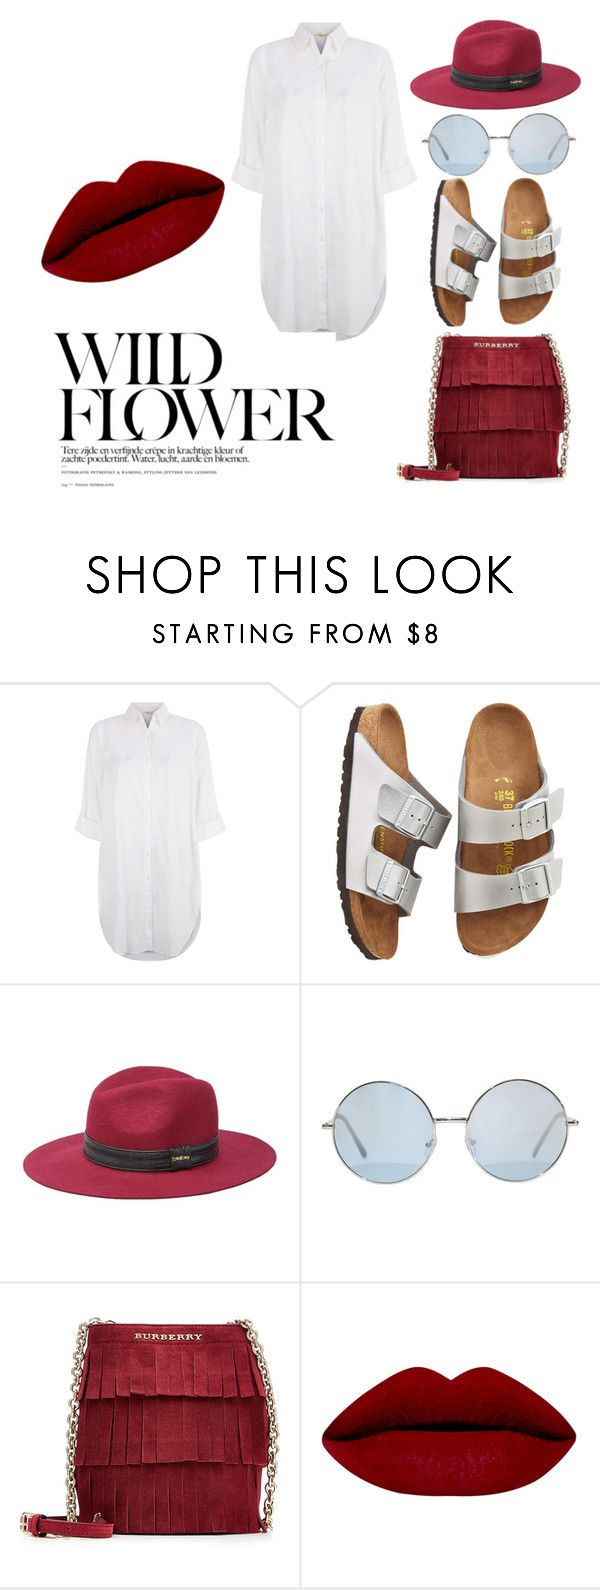 """BirkenStyle"" by taniamandavela on Polyvore featuring Monsoon, Birkenstock, Bebe, Burberry, women's clothing, women's fashion, women, female, woman and misses"